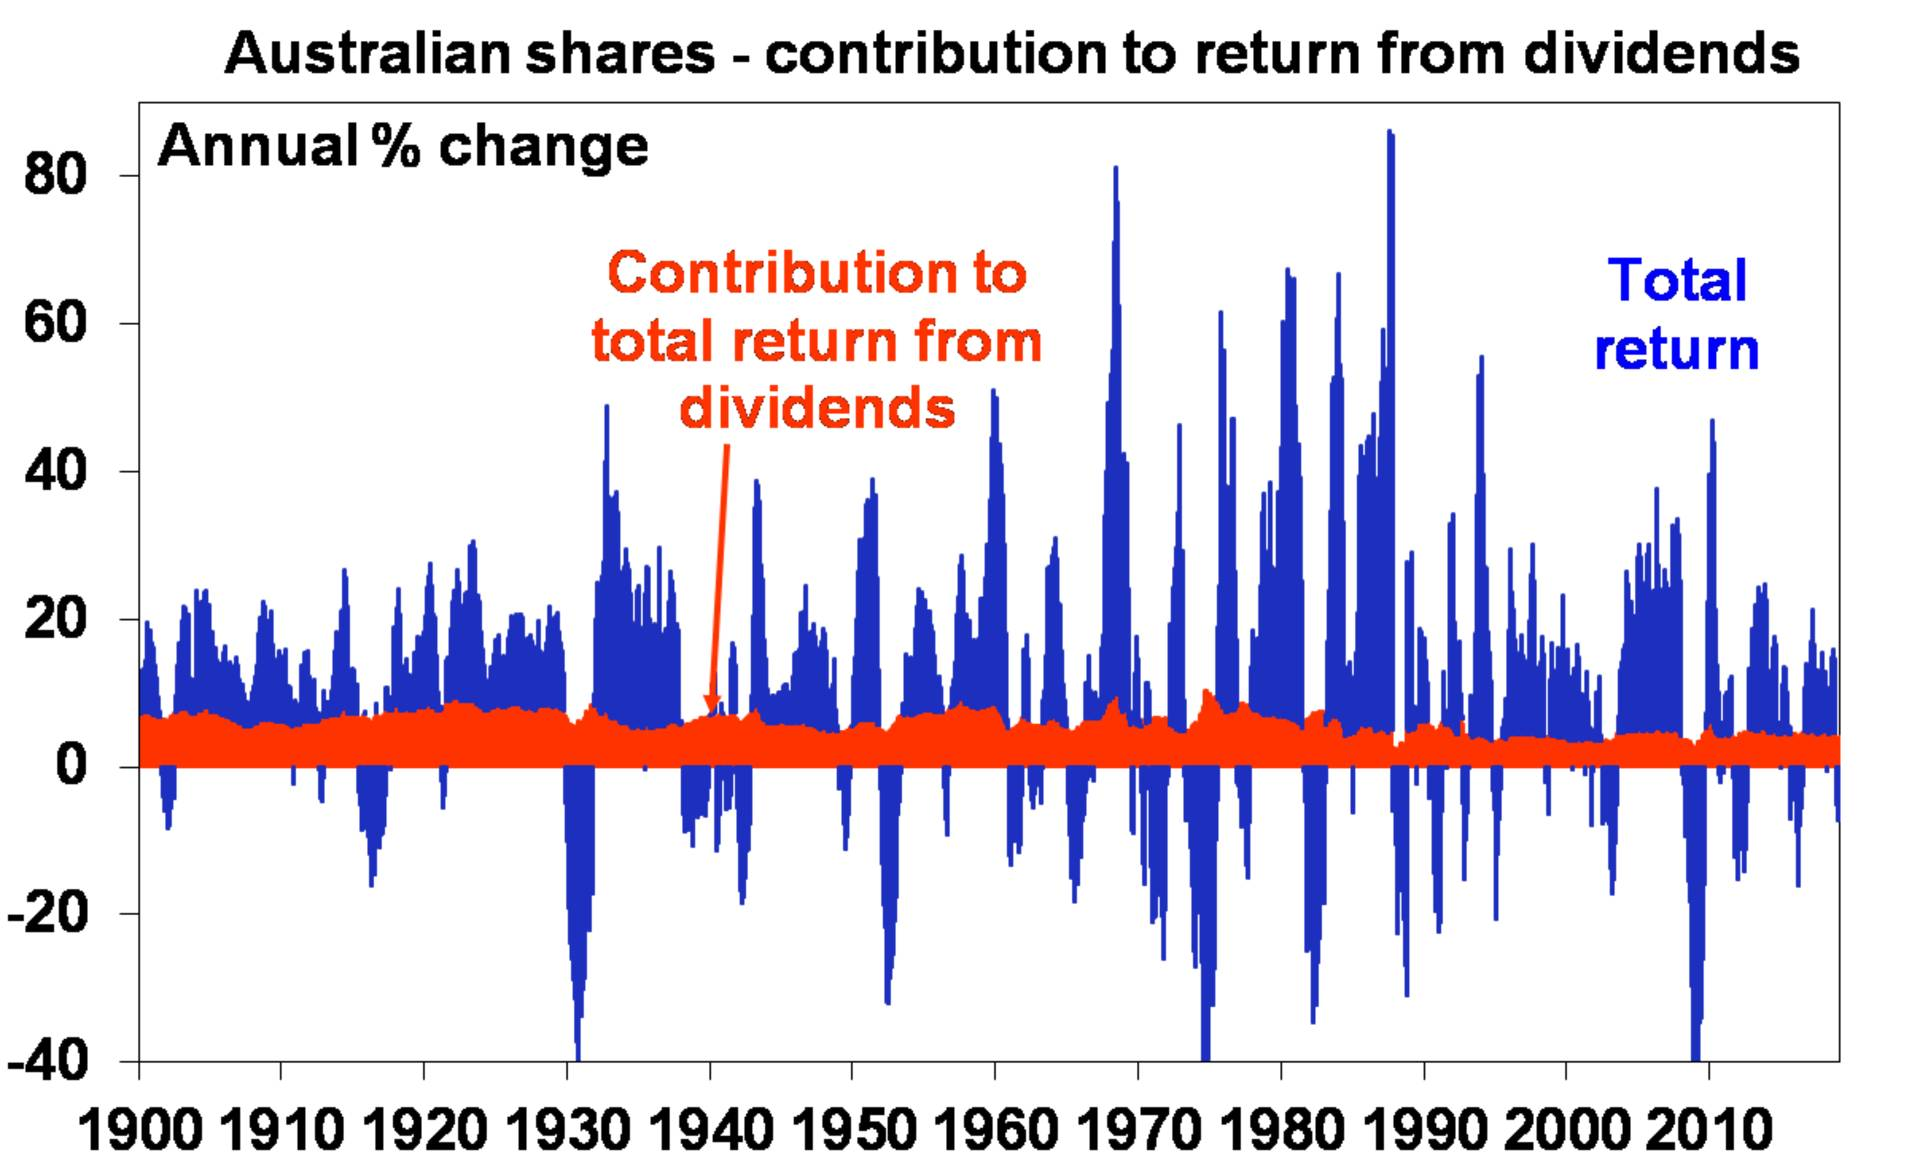 Australian shares - contribution to return from dividends